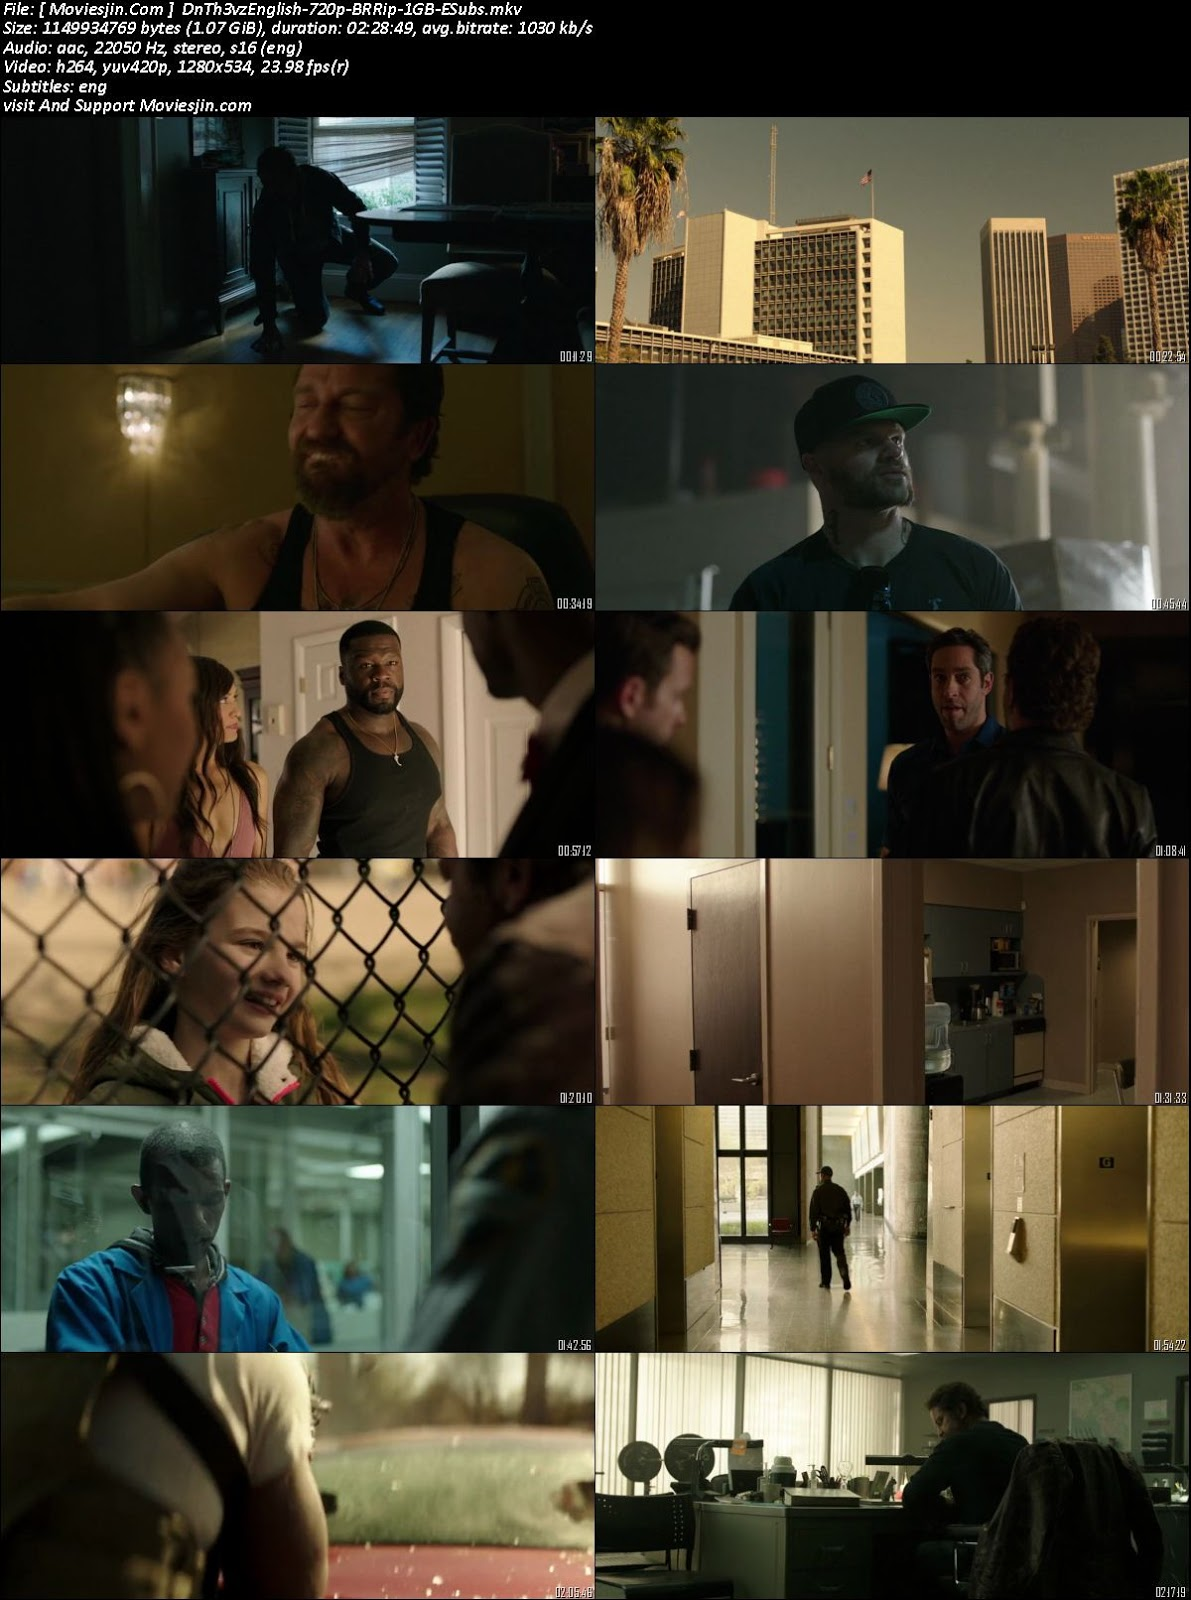 Watch Online Den of Thieves 2018 BRRip 400MB UNRATED English 480p ESub Full Movie Download Khatrimaza, free download 9xmovies,